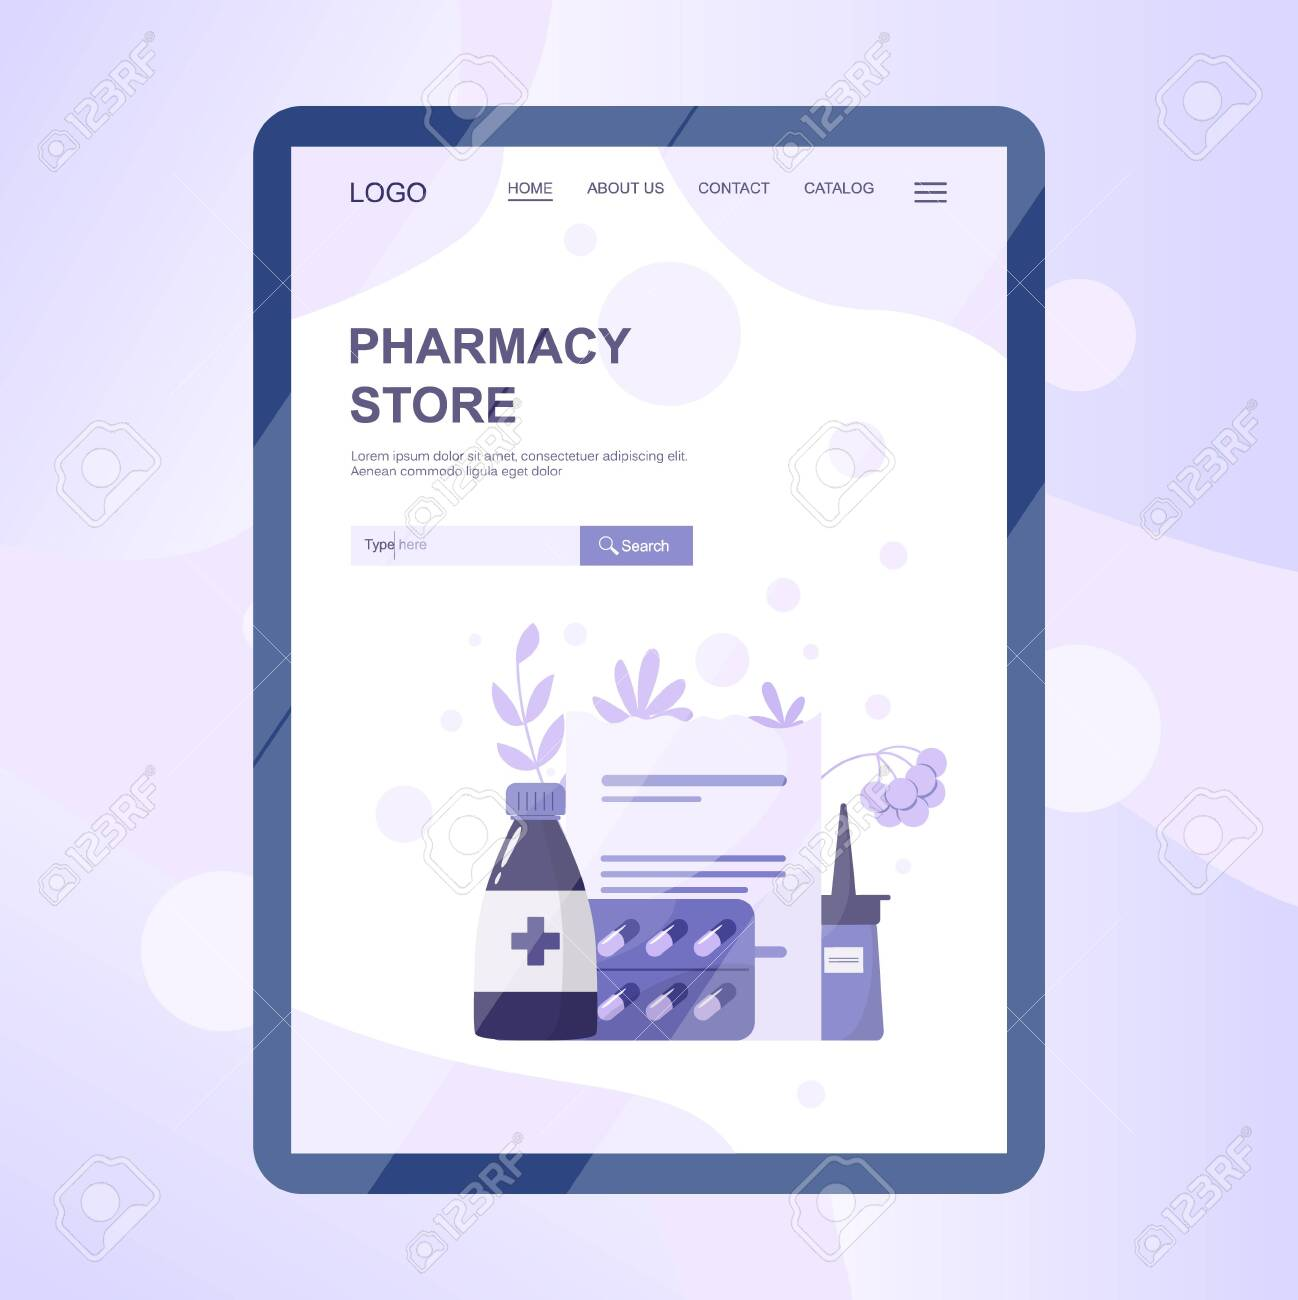 Online Pharmacy Web Banner On Tablet Screen Medicine And Healthcare Royalty Free Cliparts Vectors And Stock Illustration Image 143430799